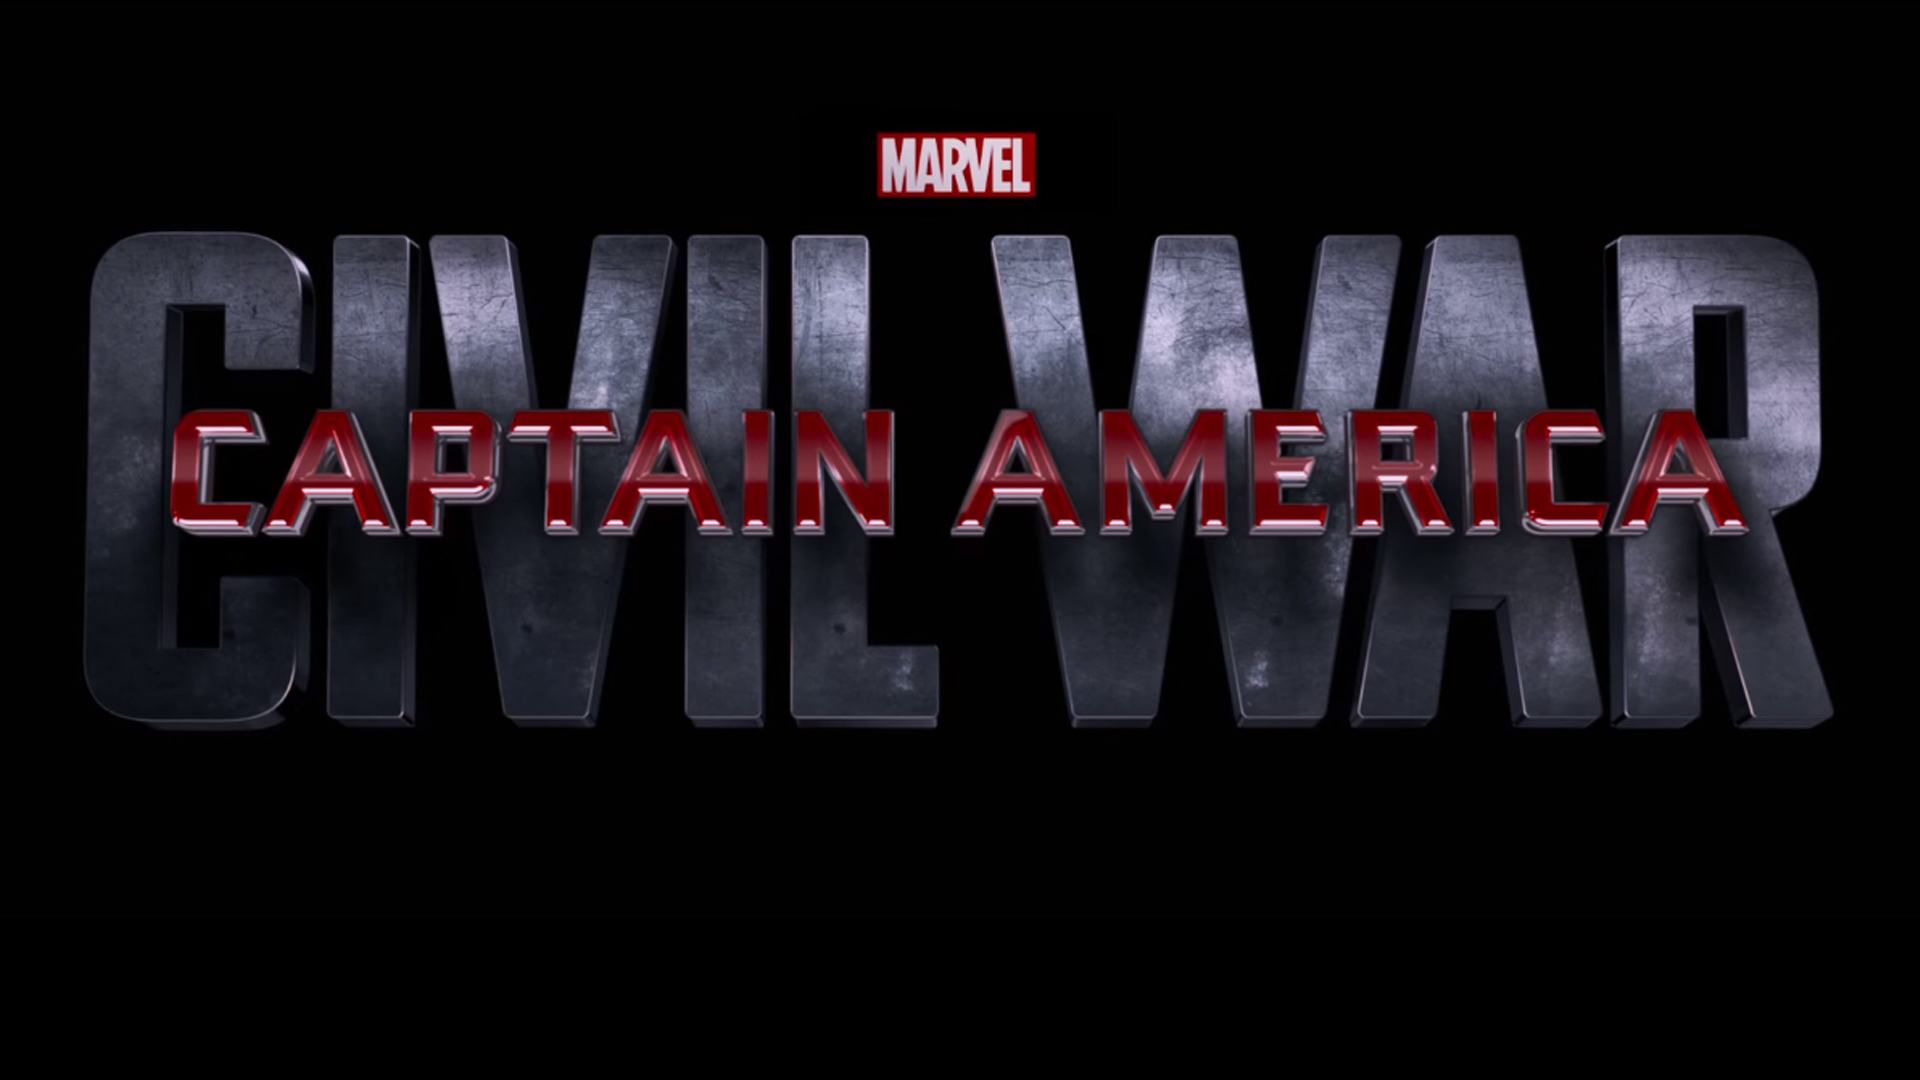 CAPTAIN AMERICA: CIVIL WAR INTRODUCES SPIDERMAN IN LATEST TRAILER